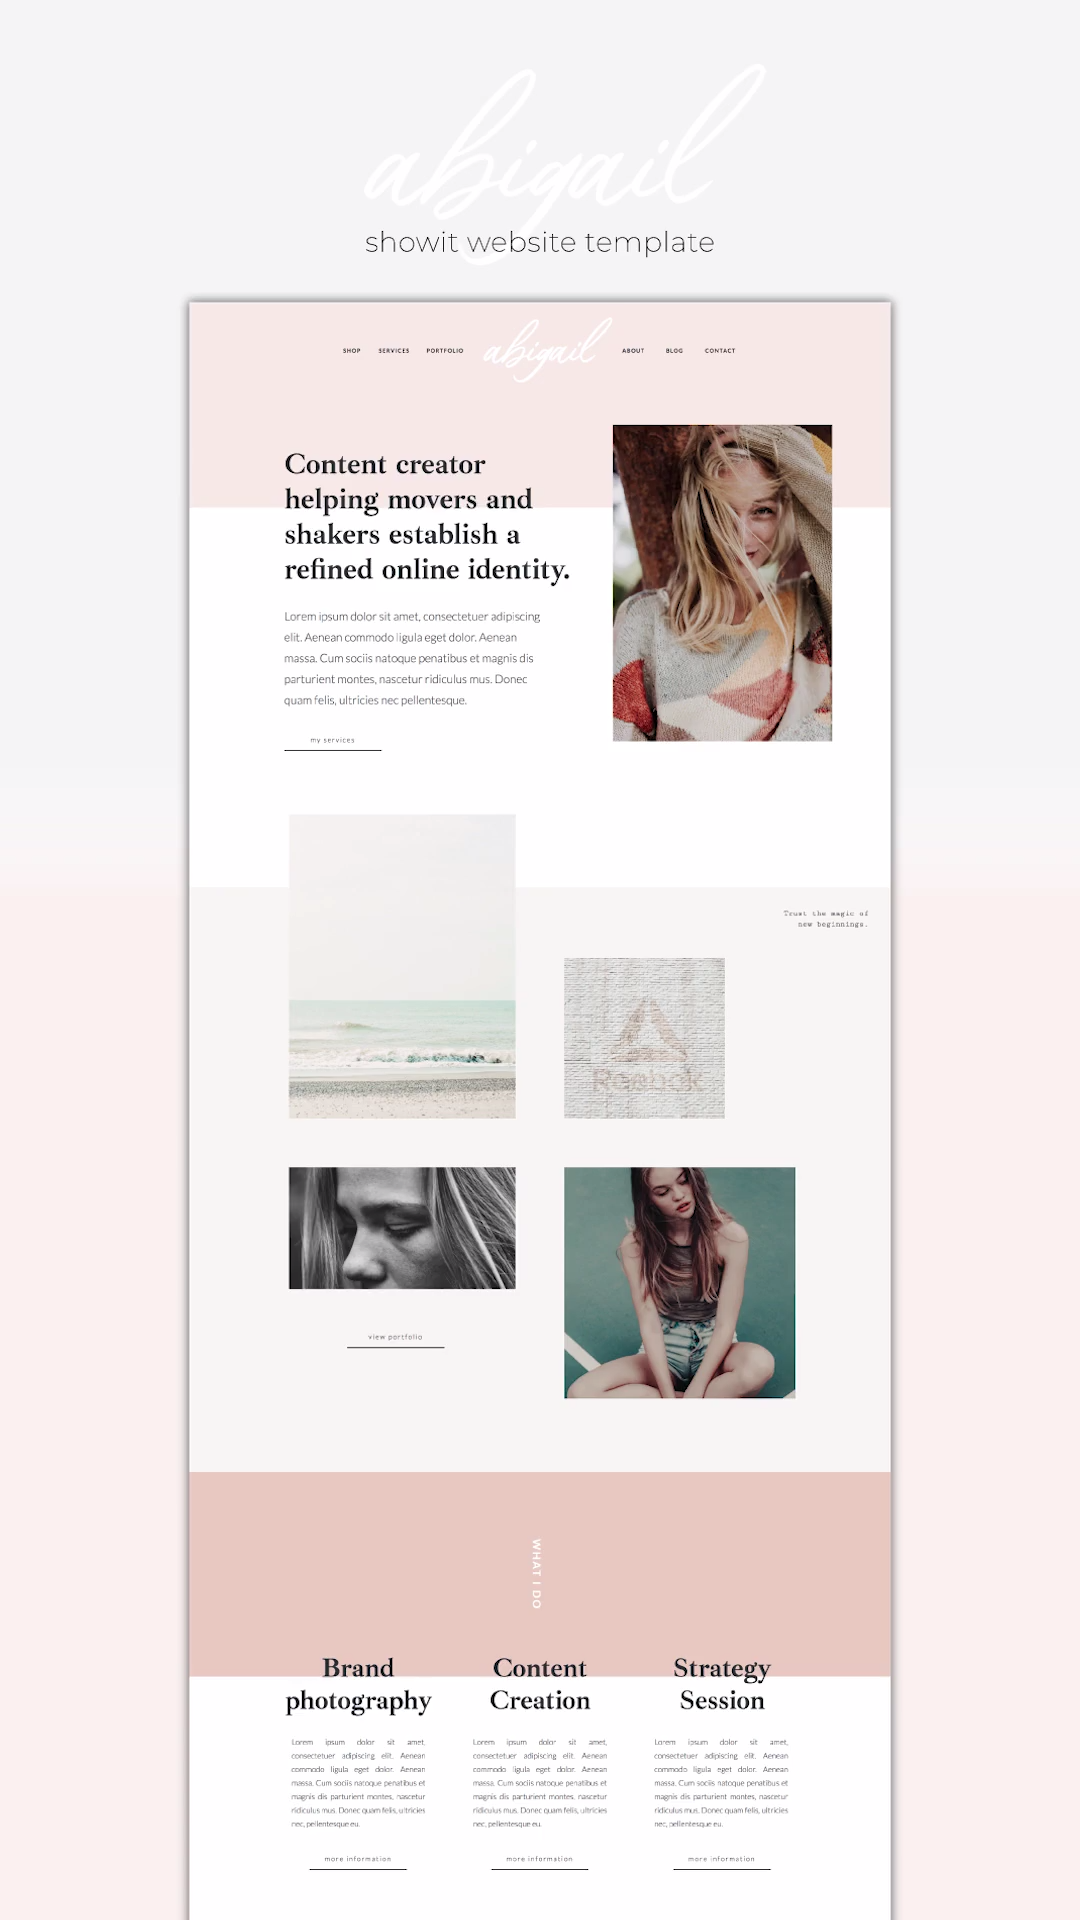 25 Best website design inspiration wordpress templates for June 2020